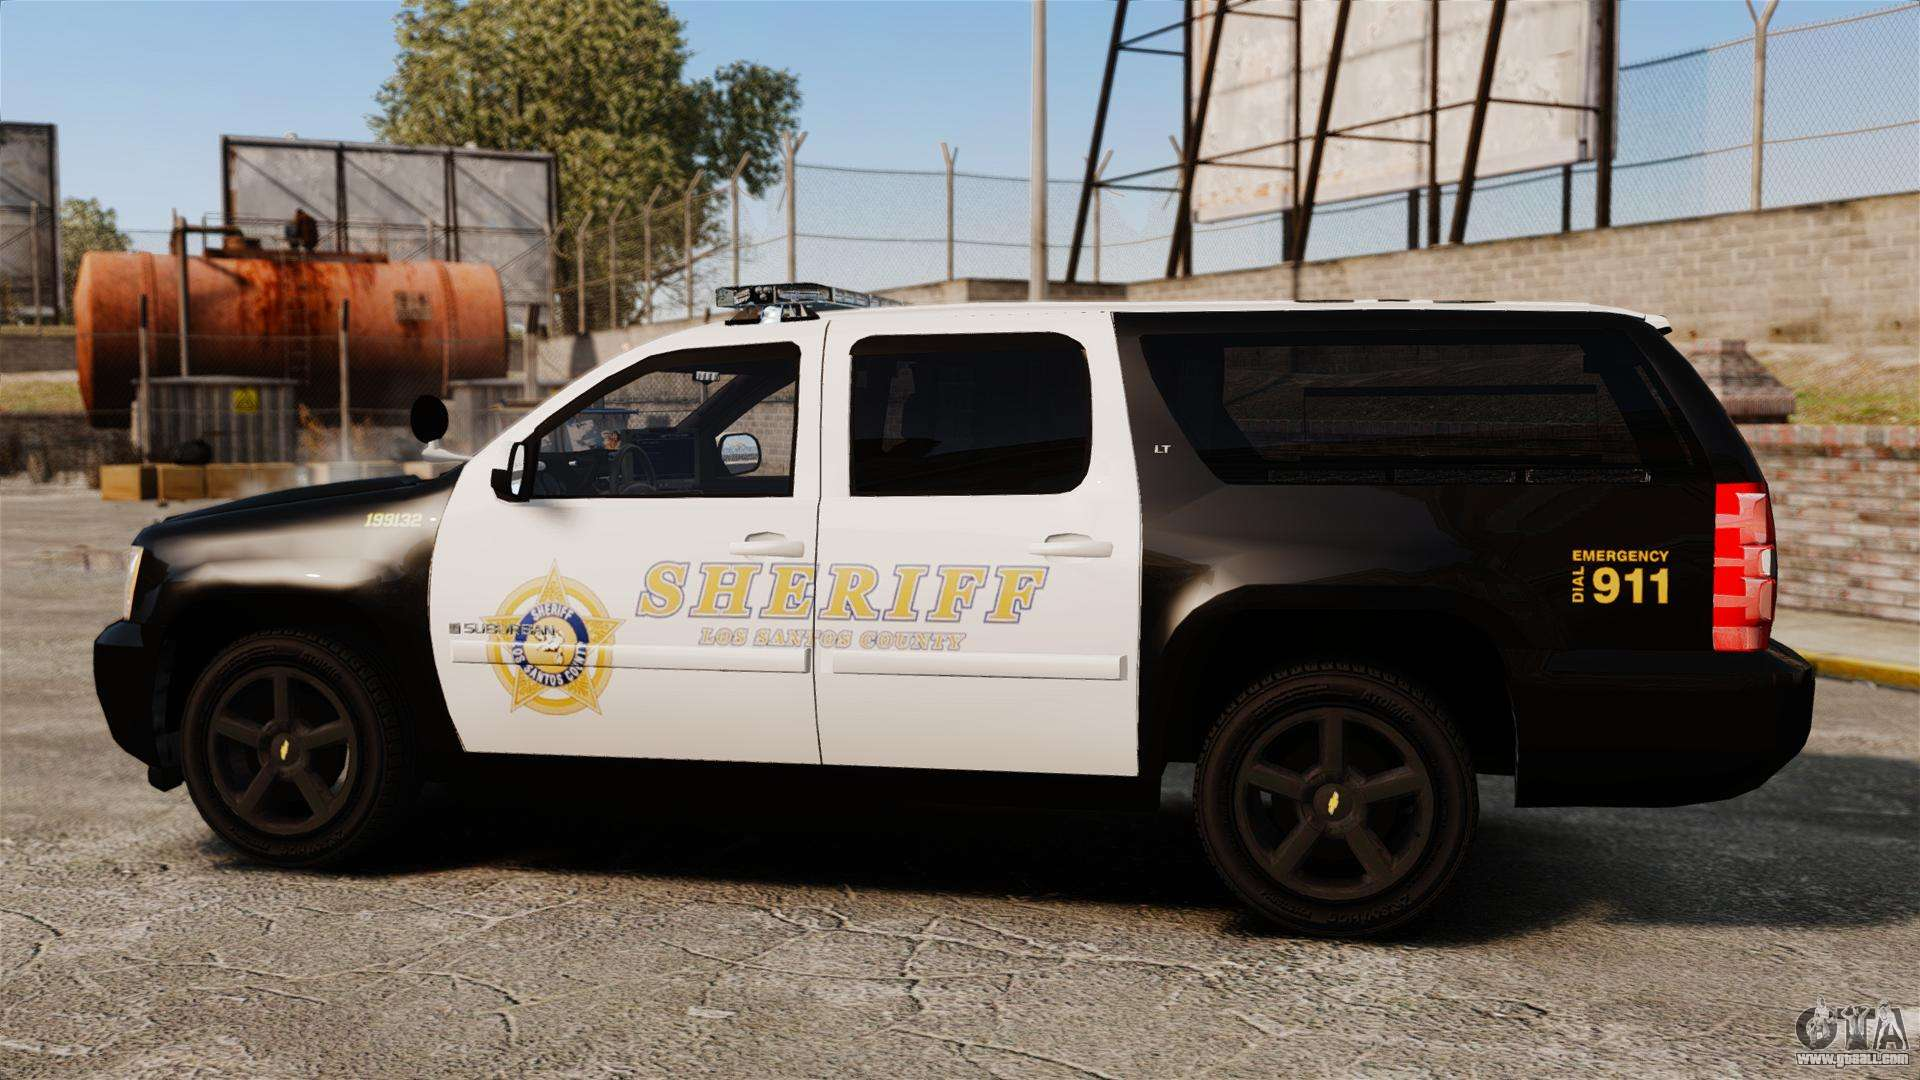 Gta 5 blaine county sheriff | Retro Blaine County Sheriff  2019-08-25